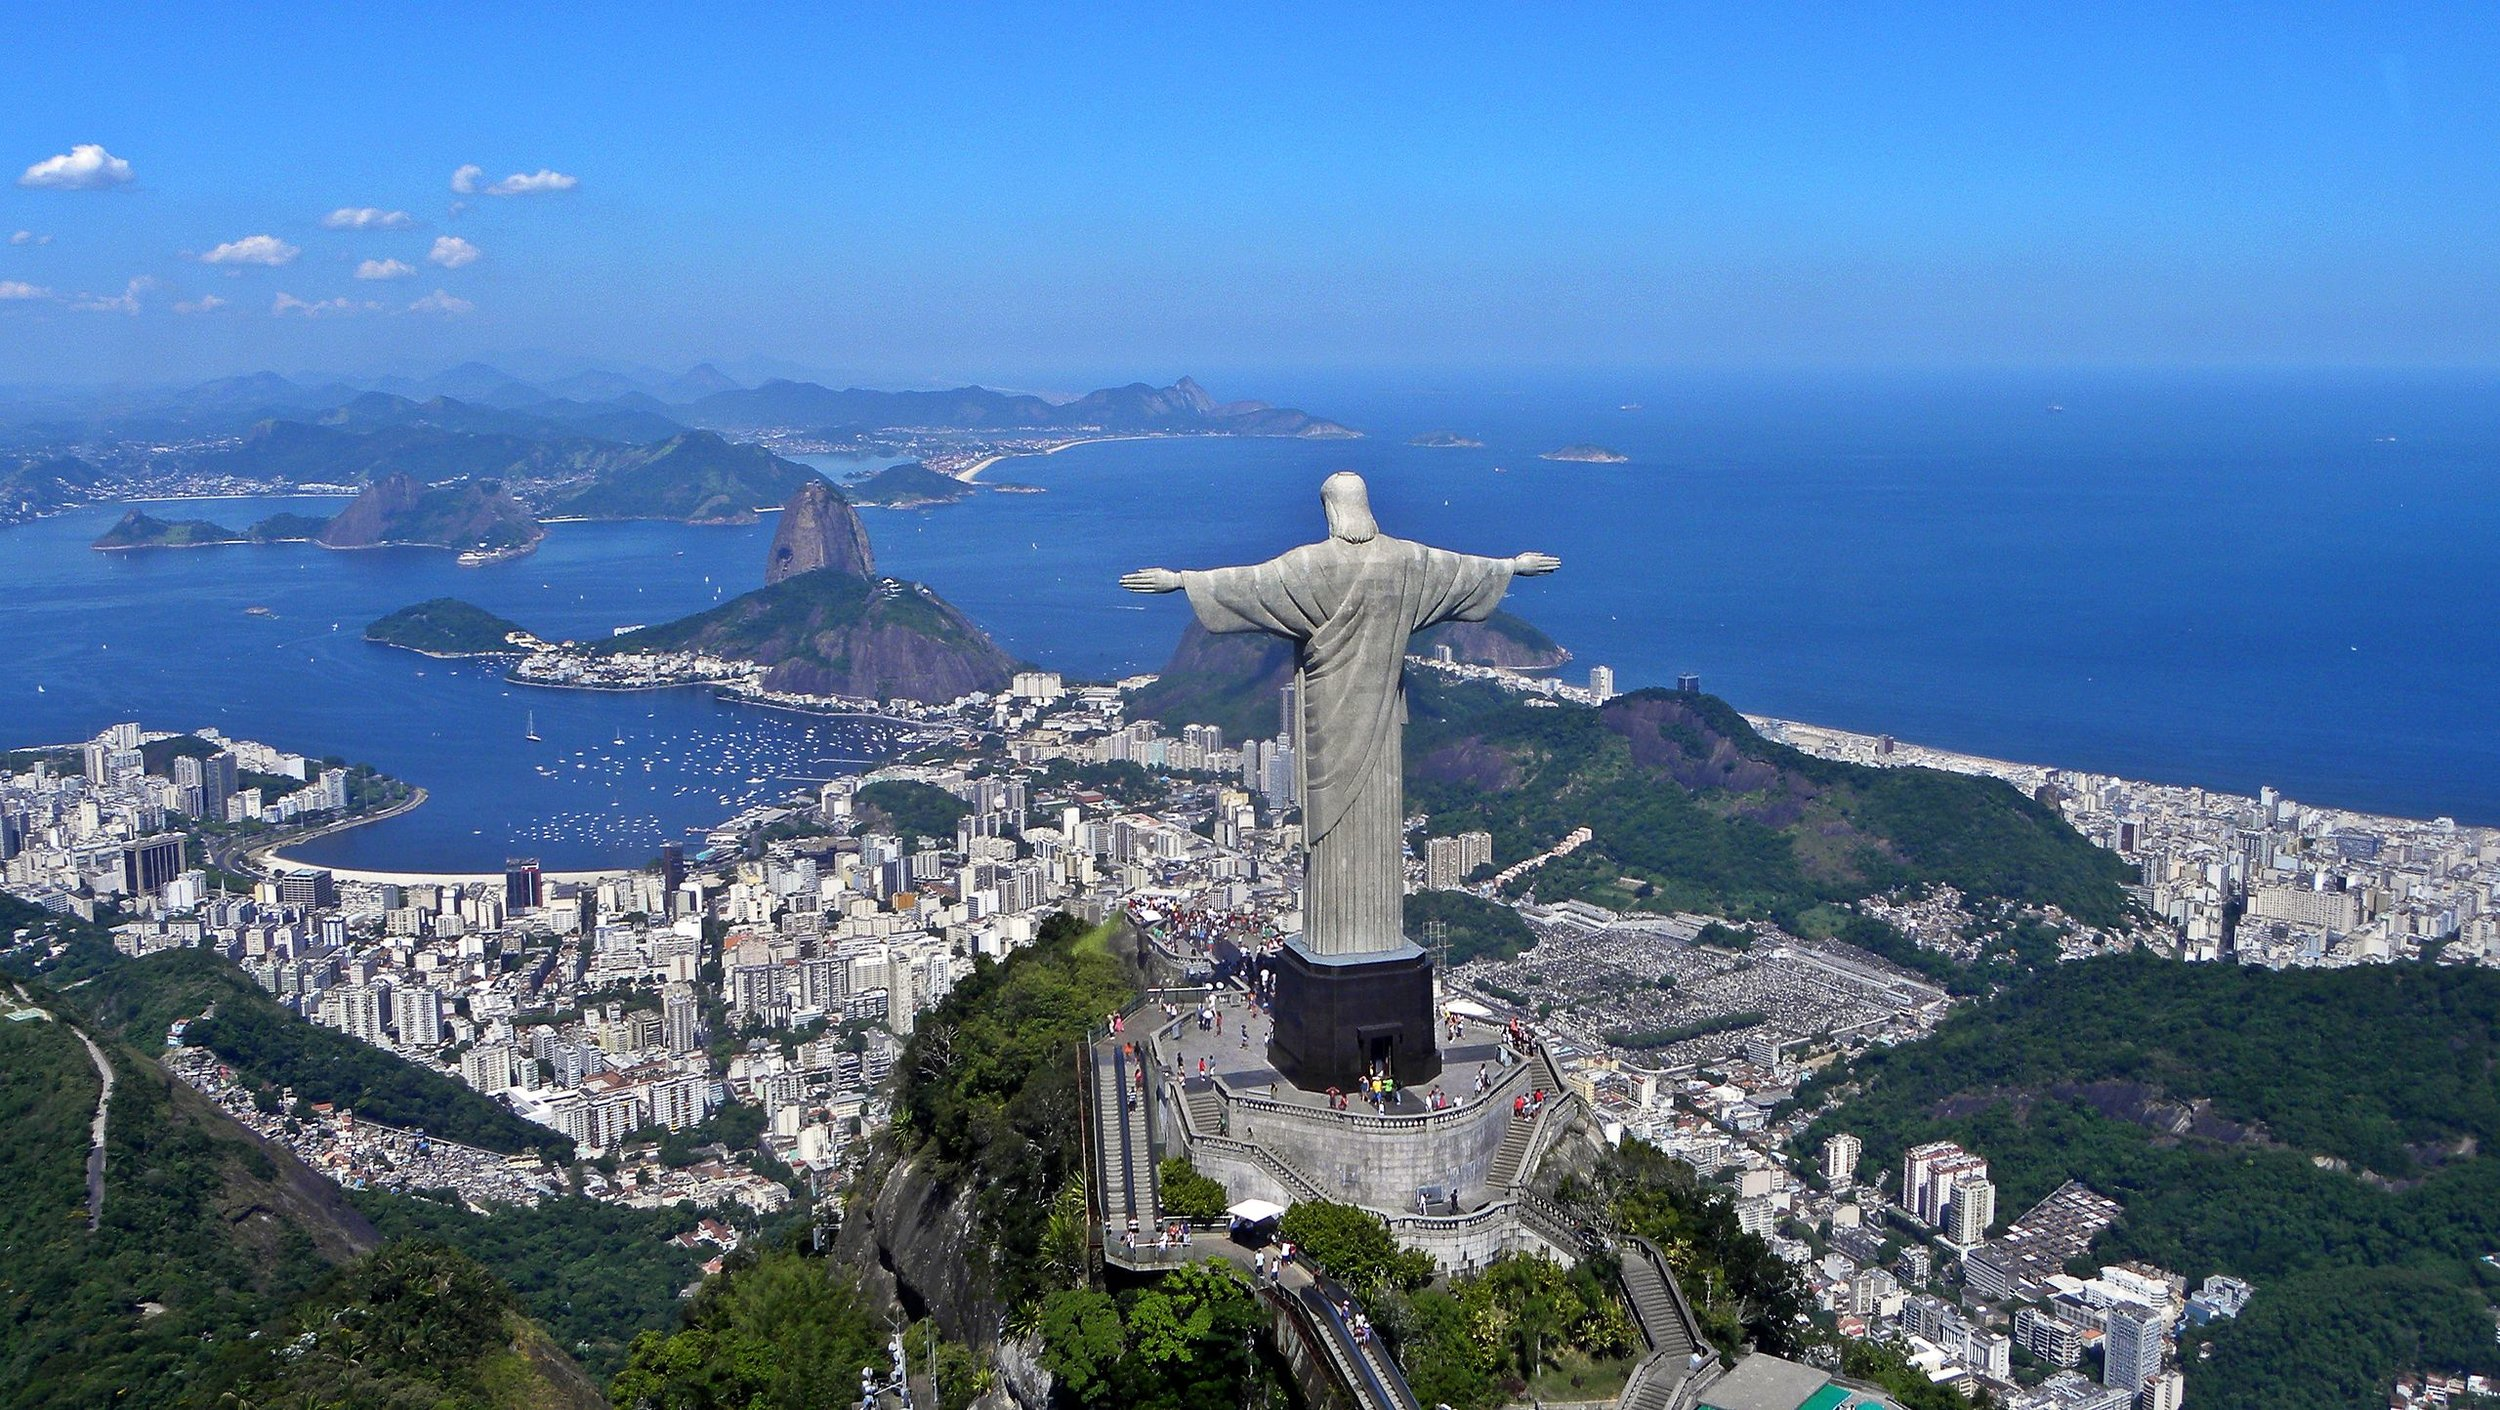 """Christ on Corcovado mountain"" by Artyominc - Template:Artyom Sharbatyan. Licensed under Creative Commons Attribution-Share Alike 3.0 via Wikimedia Commons -"